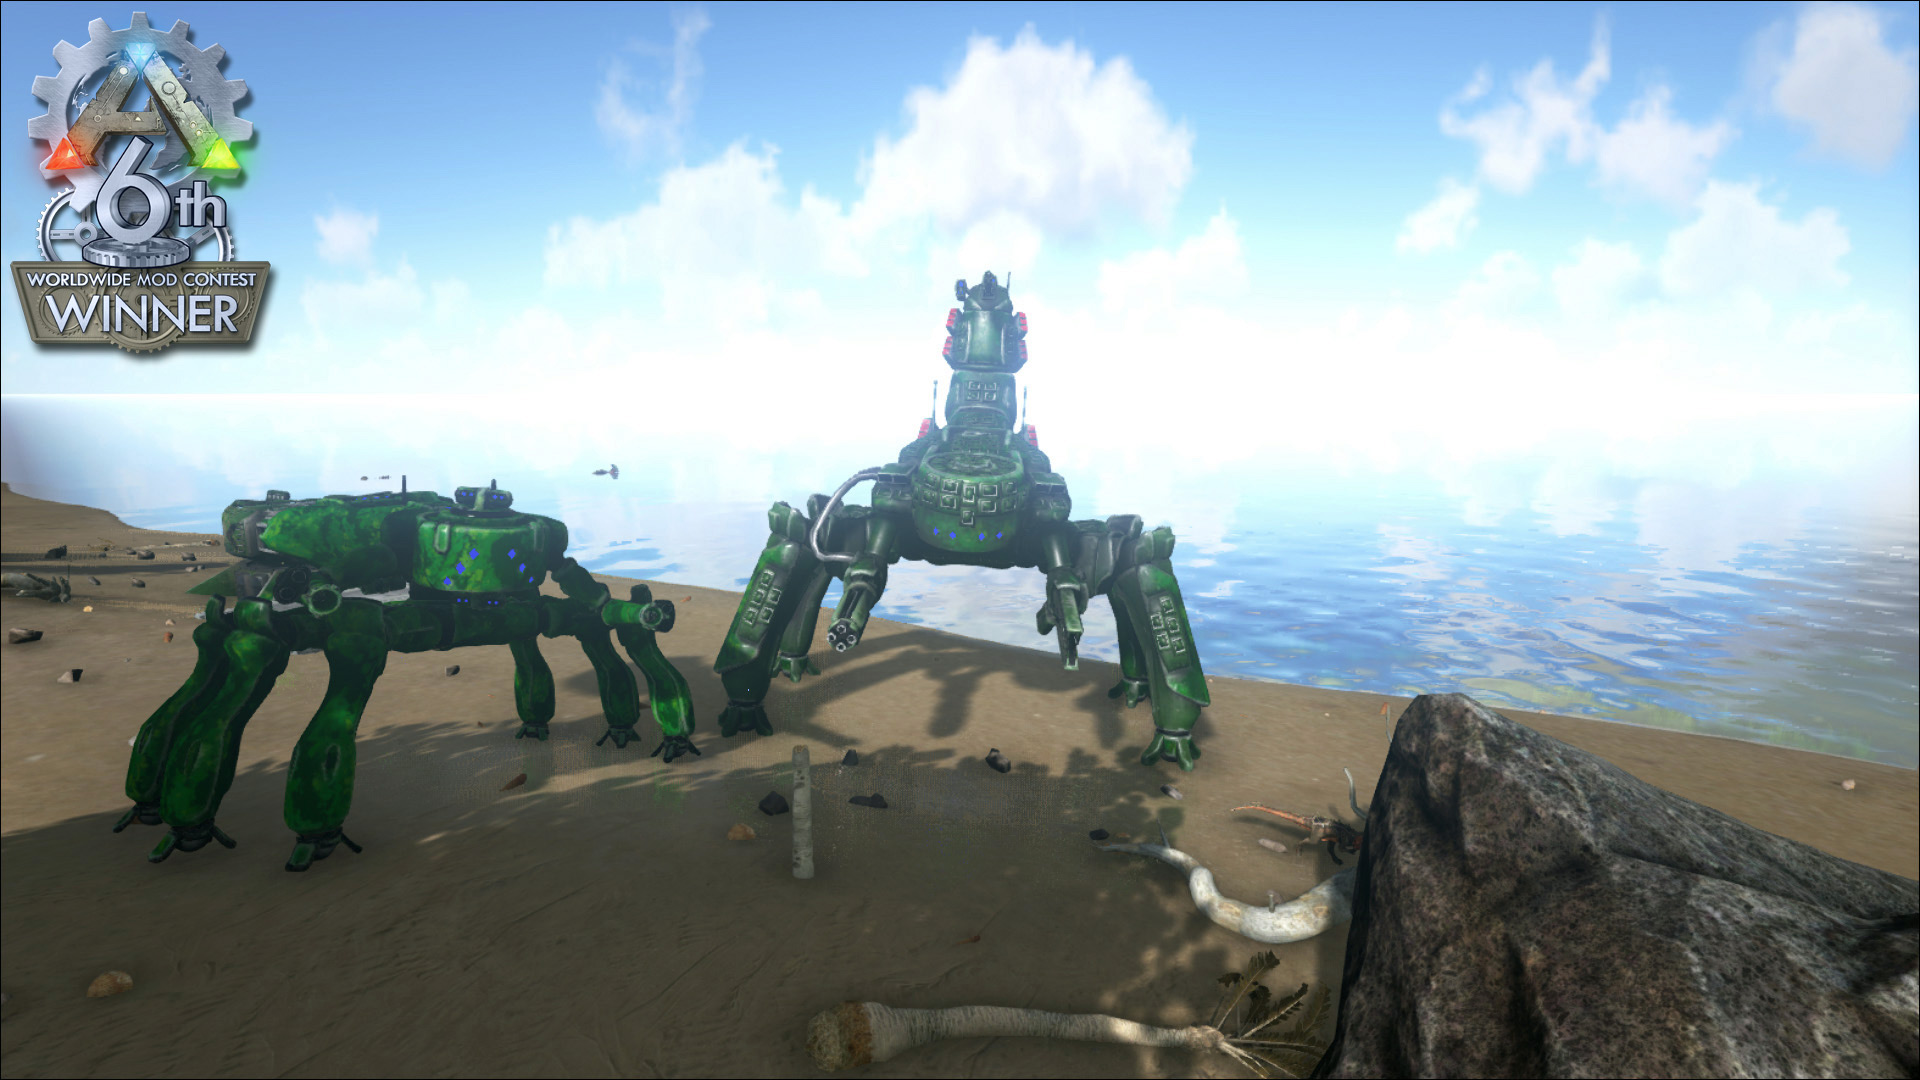 News: Wildcard will pay ARK modders to finish their mods